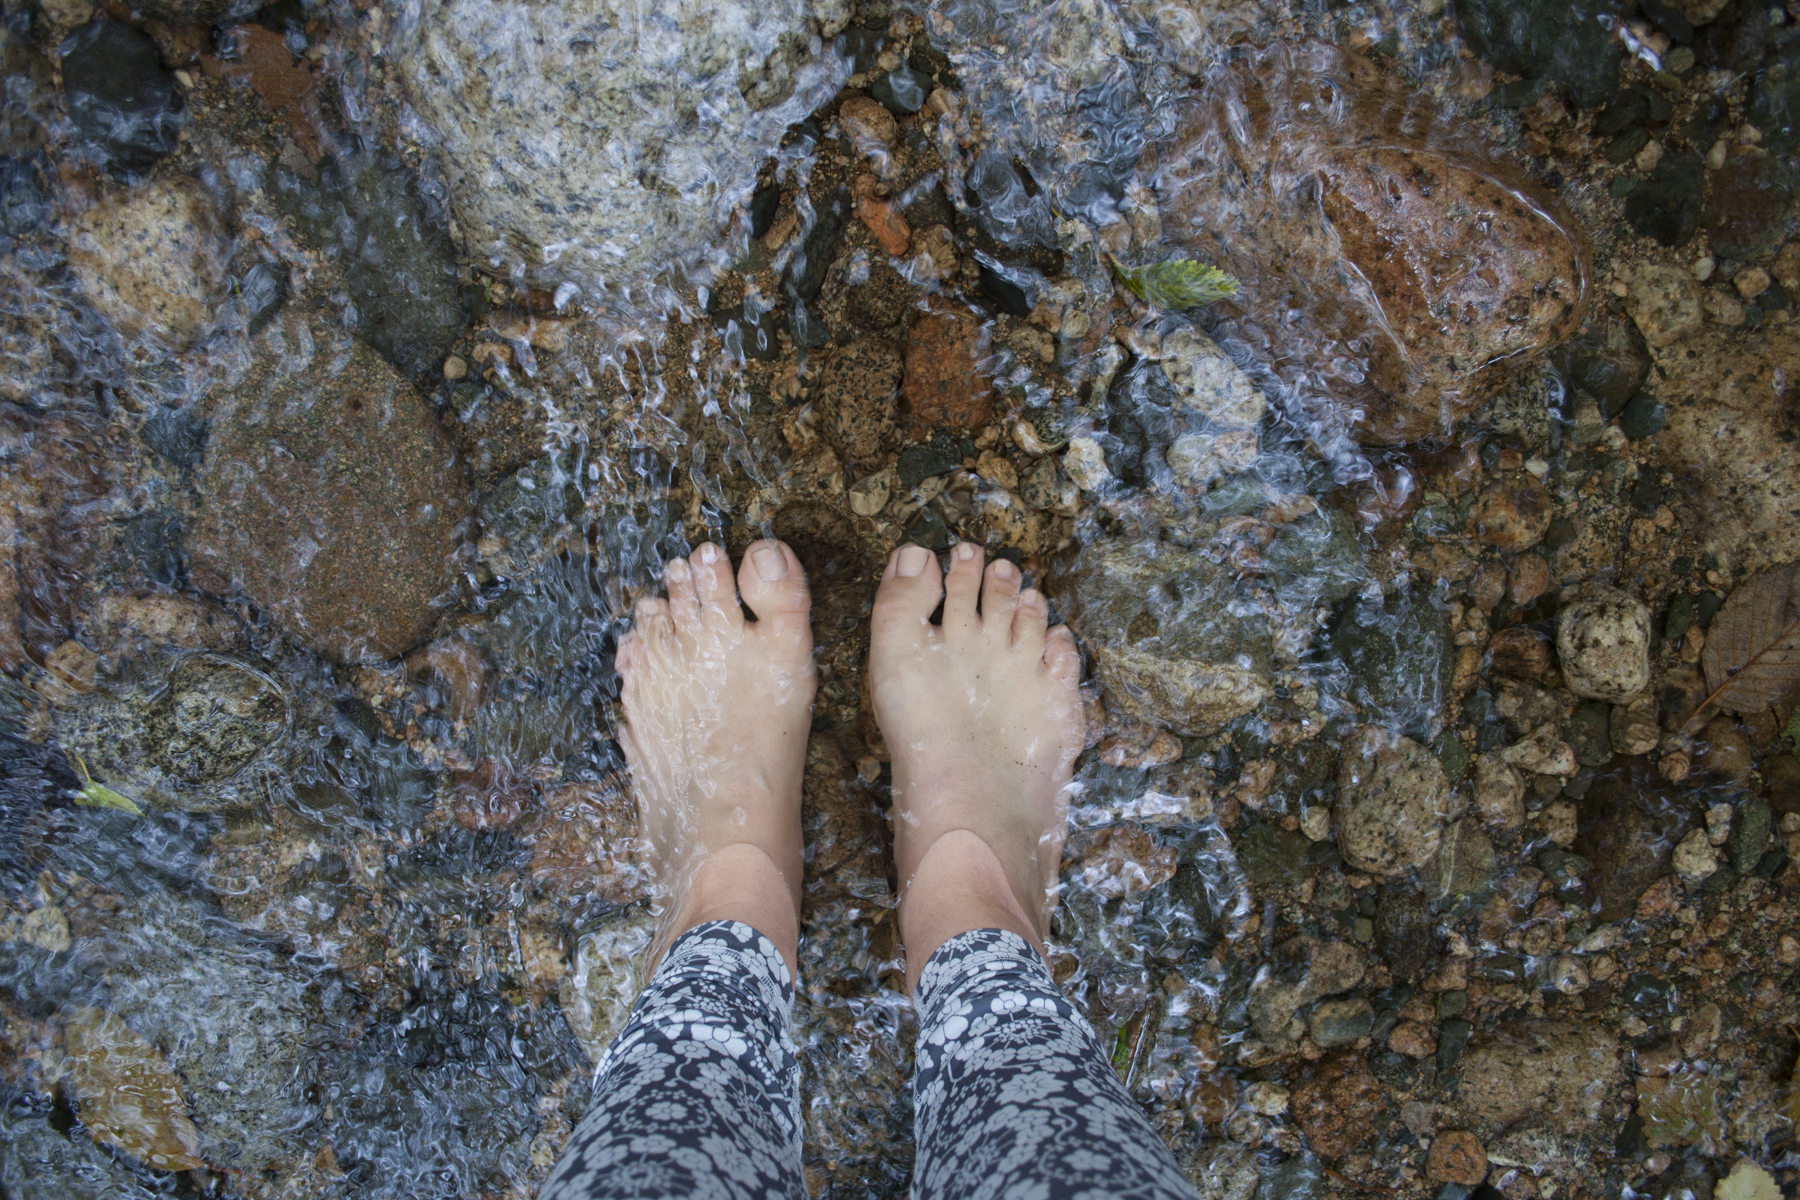 5 ways to be more barefoot  - Safely transitioning to minimal footwear